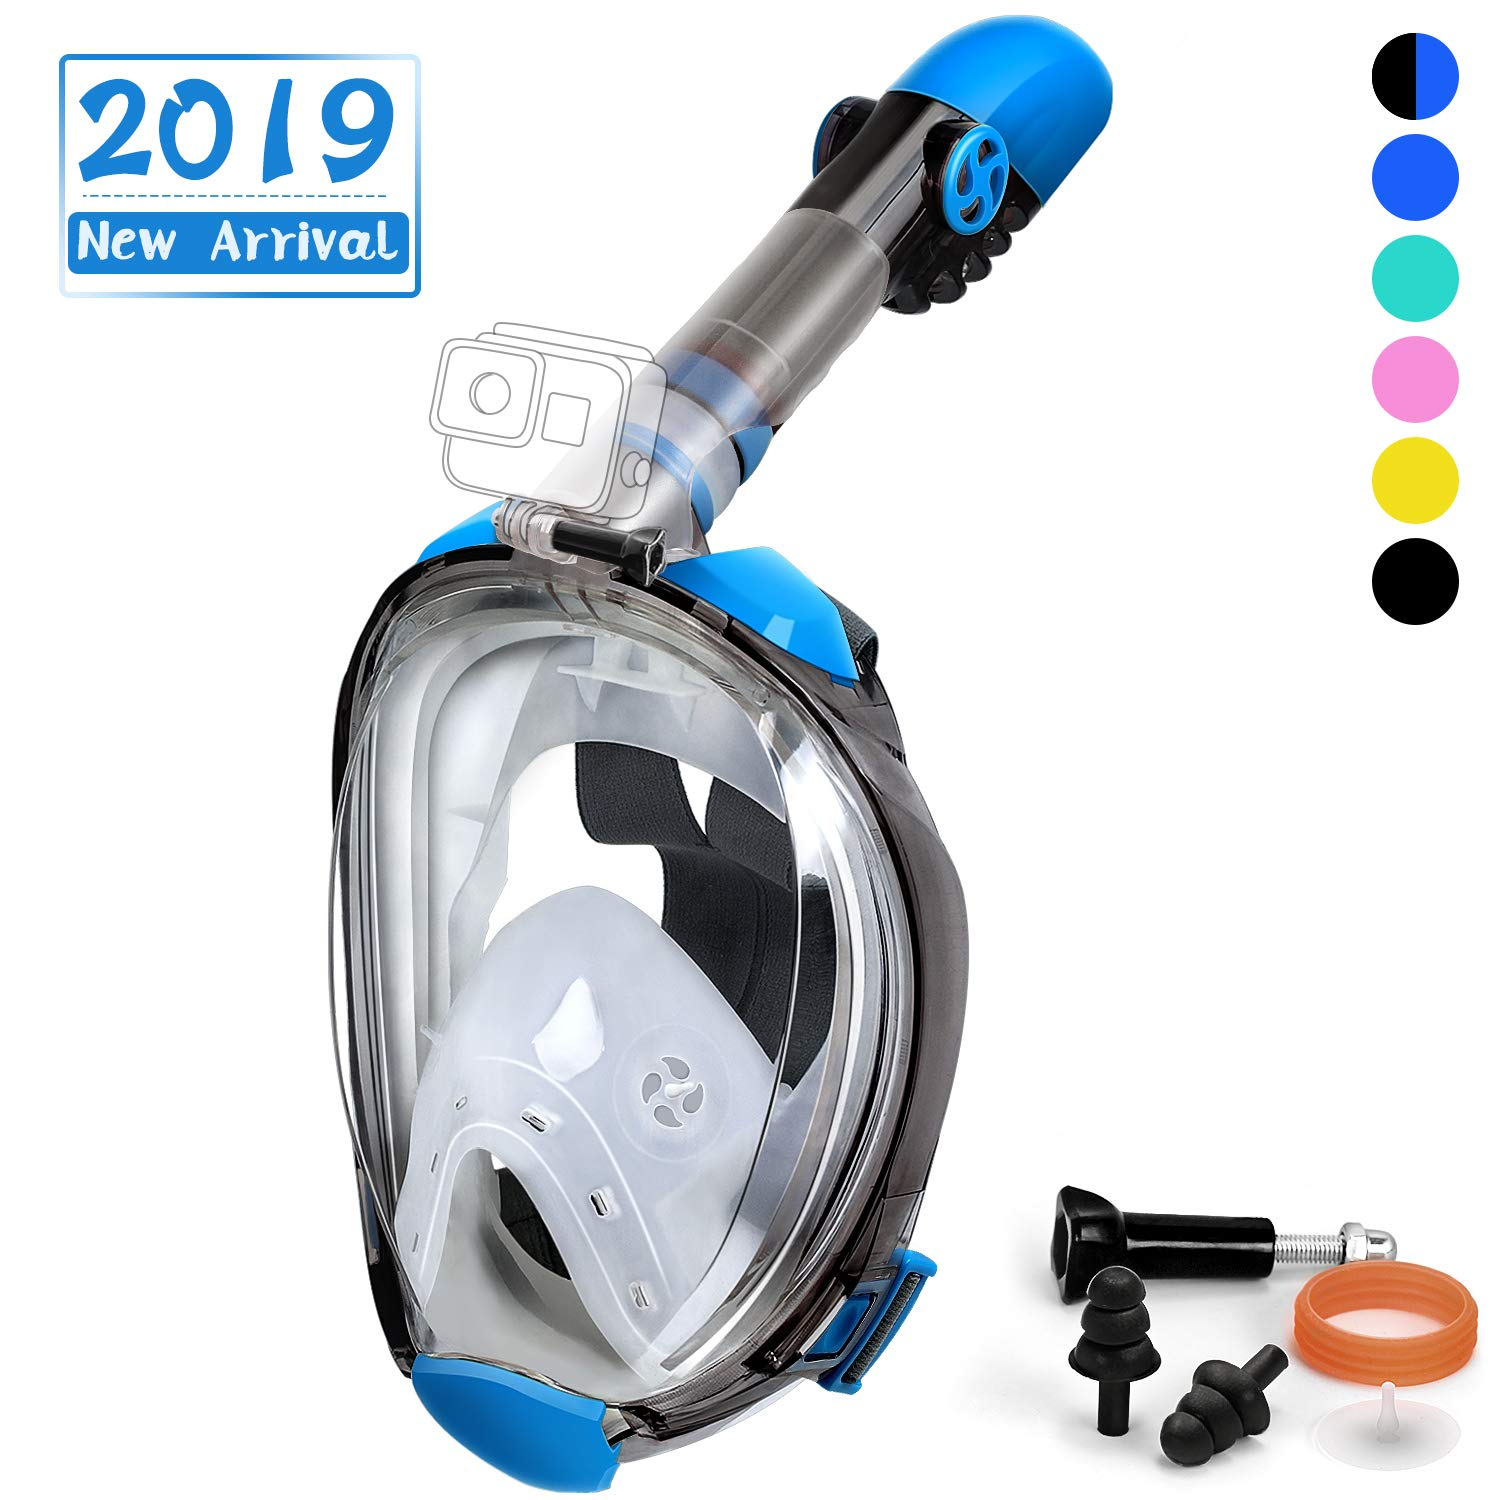 OUSPT Full Face Snorkel Mask, Snorkeling Mask with Detachable Camera Mount, Panoramic 180° View Upgraded Dive Mask with Newest Breathing System, Dry Top Set Anti-Fog Anti-Leak (Blue-2, L/XL) by OUSPT